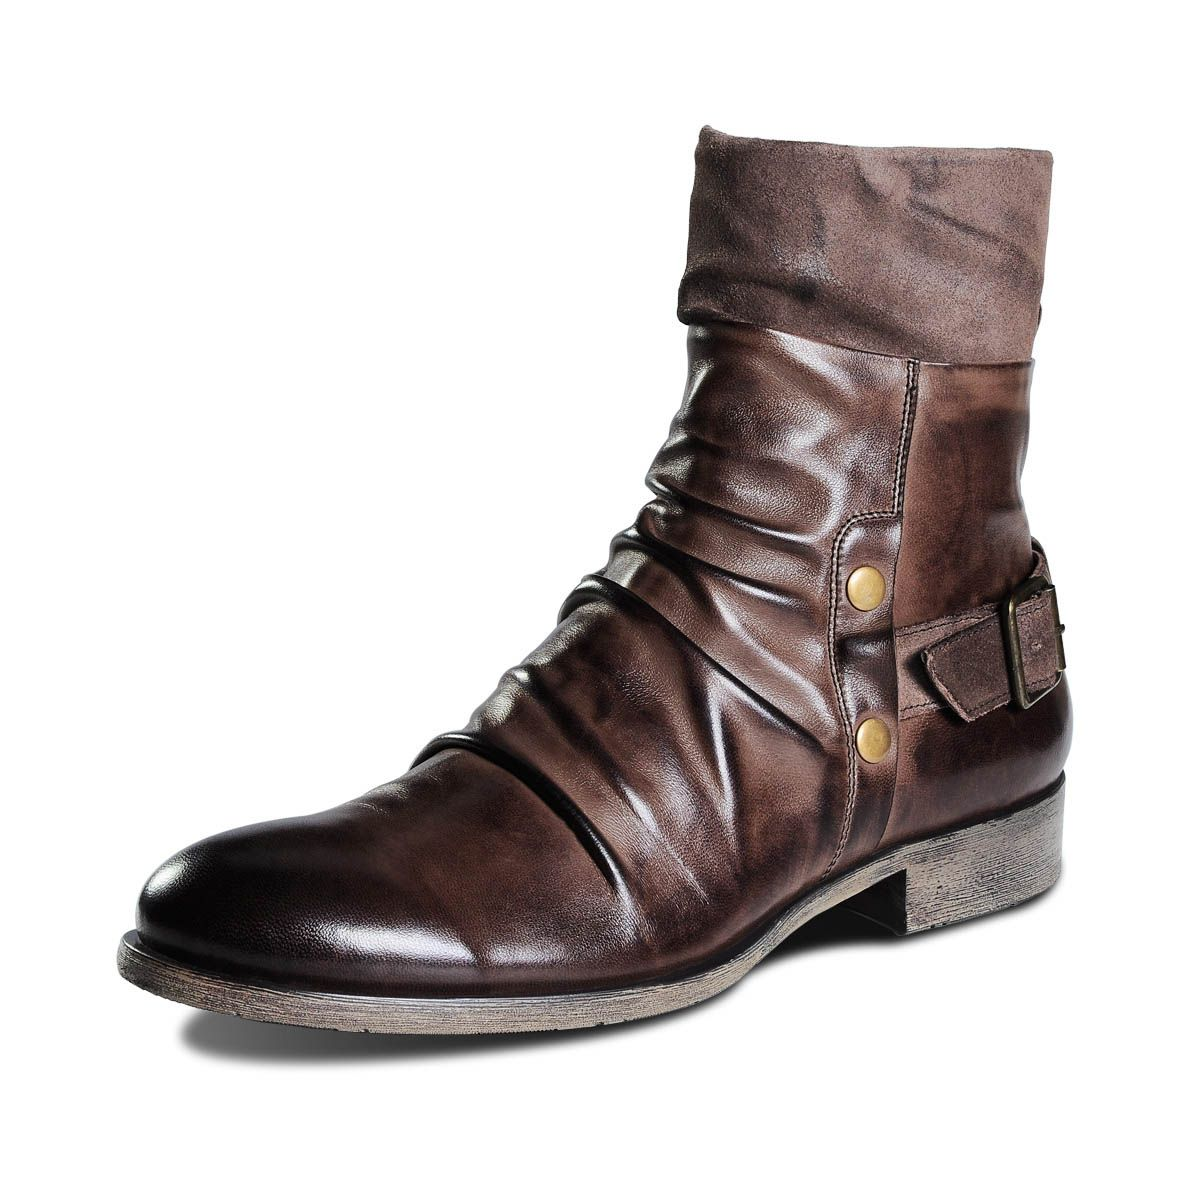 men's dress boots - Google Search | Clothing | Pinterest